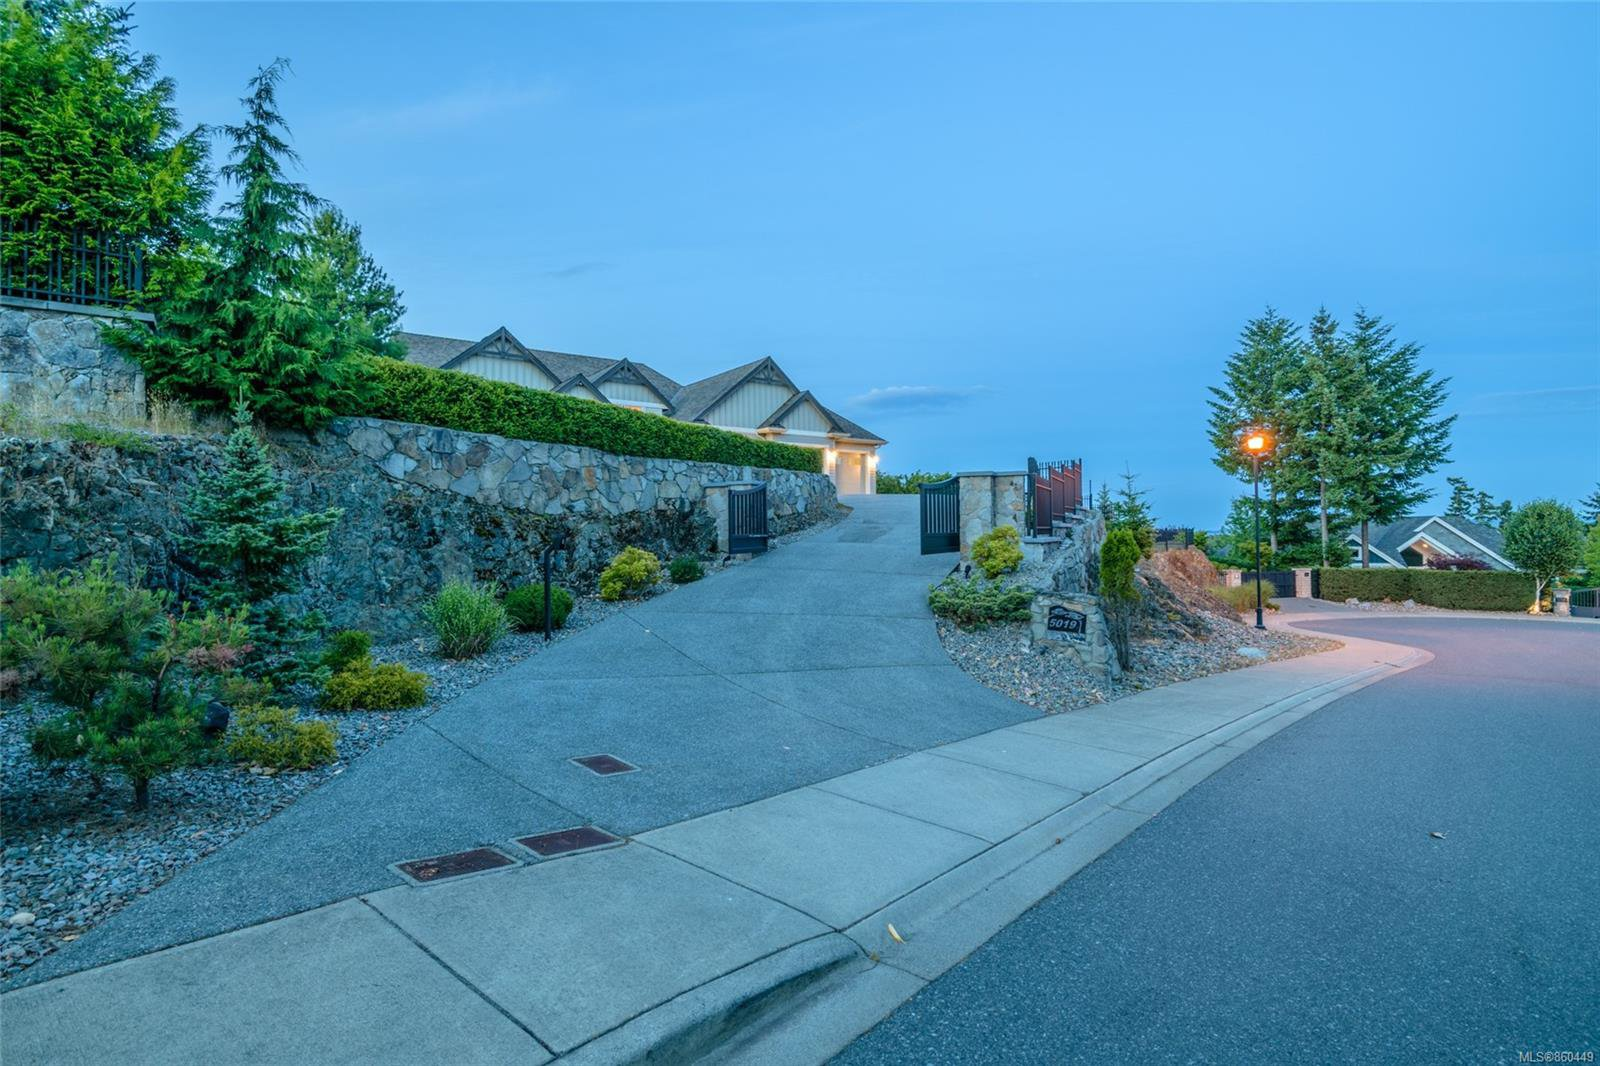 Photo 47: Photos: 5019 Hinrich View in : Na North Nanaimo House for sale (Nanaimo)  : MLS®# 860449